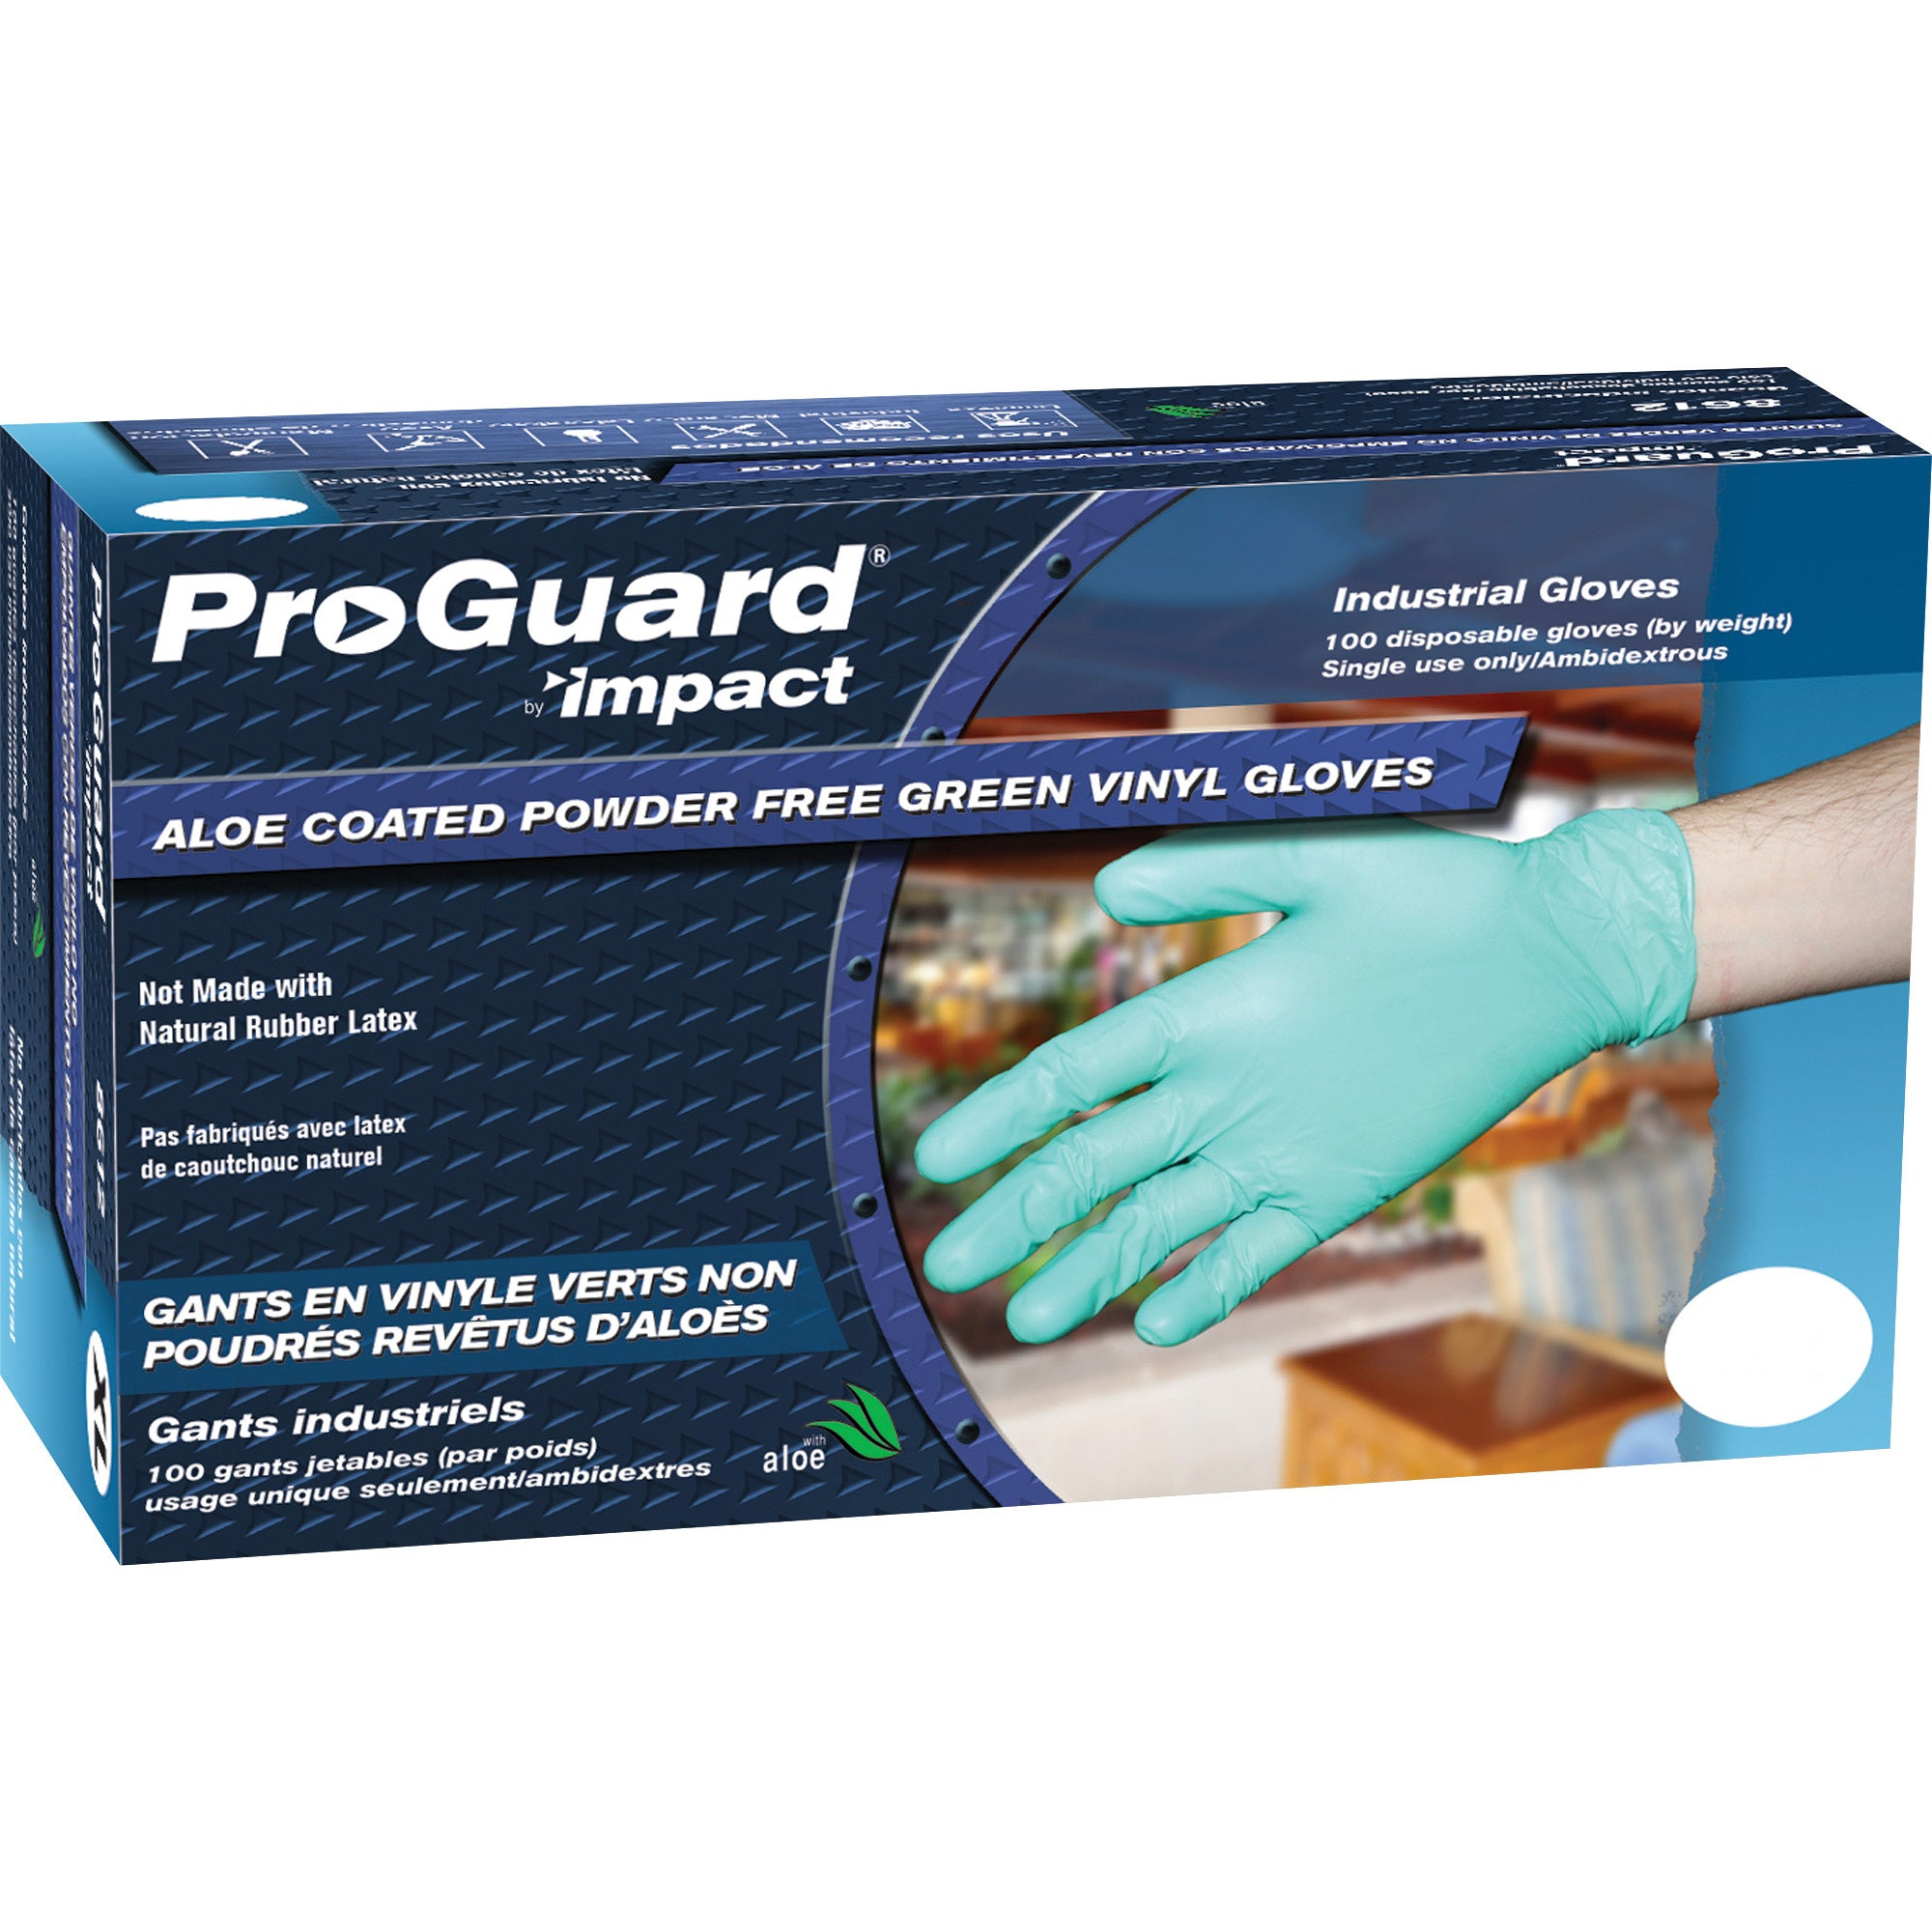 ProGuard Aloe Coated Large Vinyl Gloves 100/Box 8612